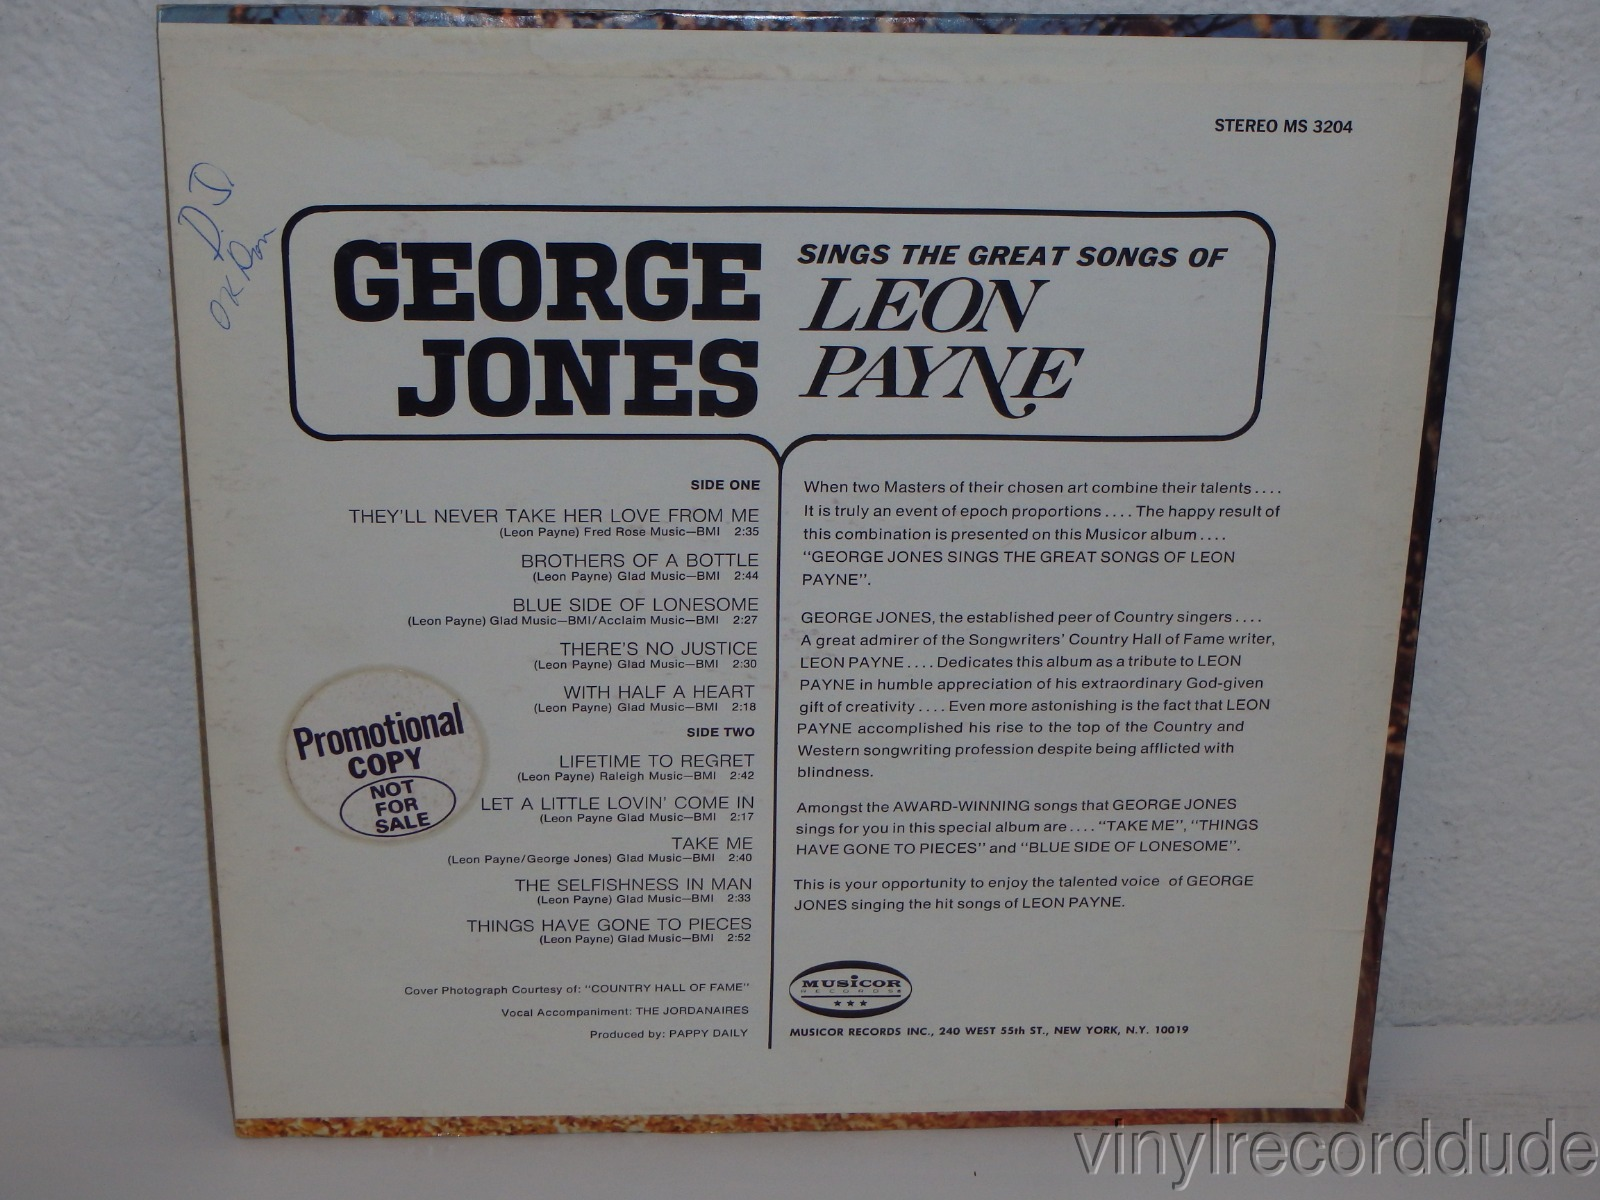 Details about GEORGE JONES Sings The Great Songs Of Leon Payne 1971 PROMO  NM! Musicor MS 3204